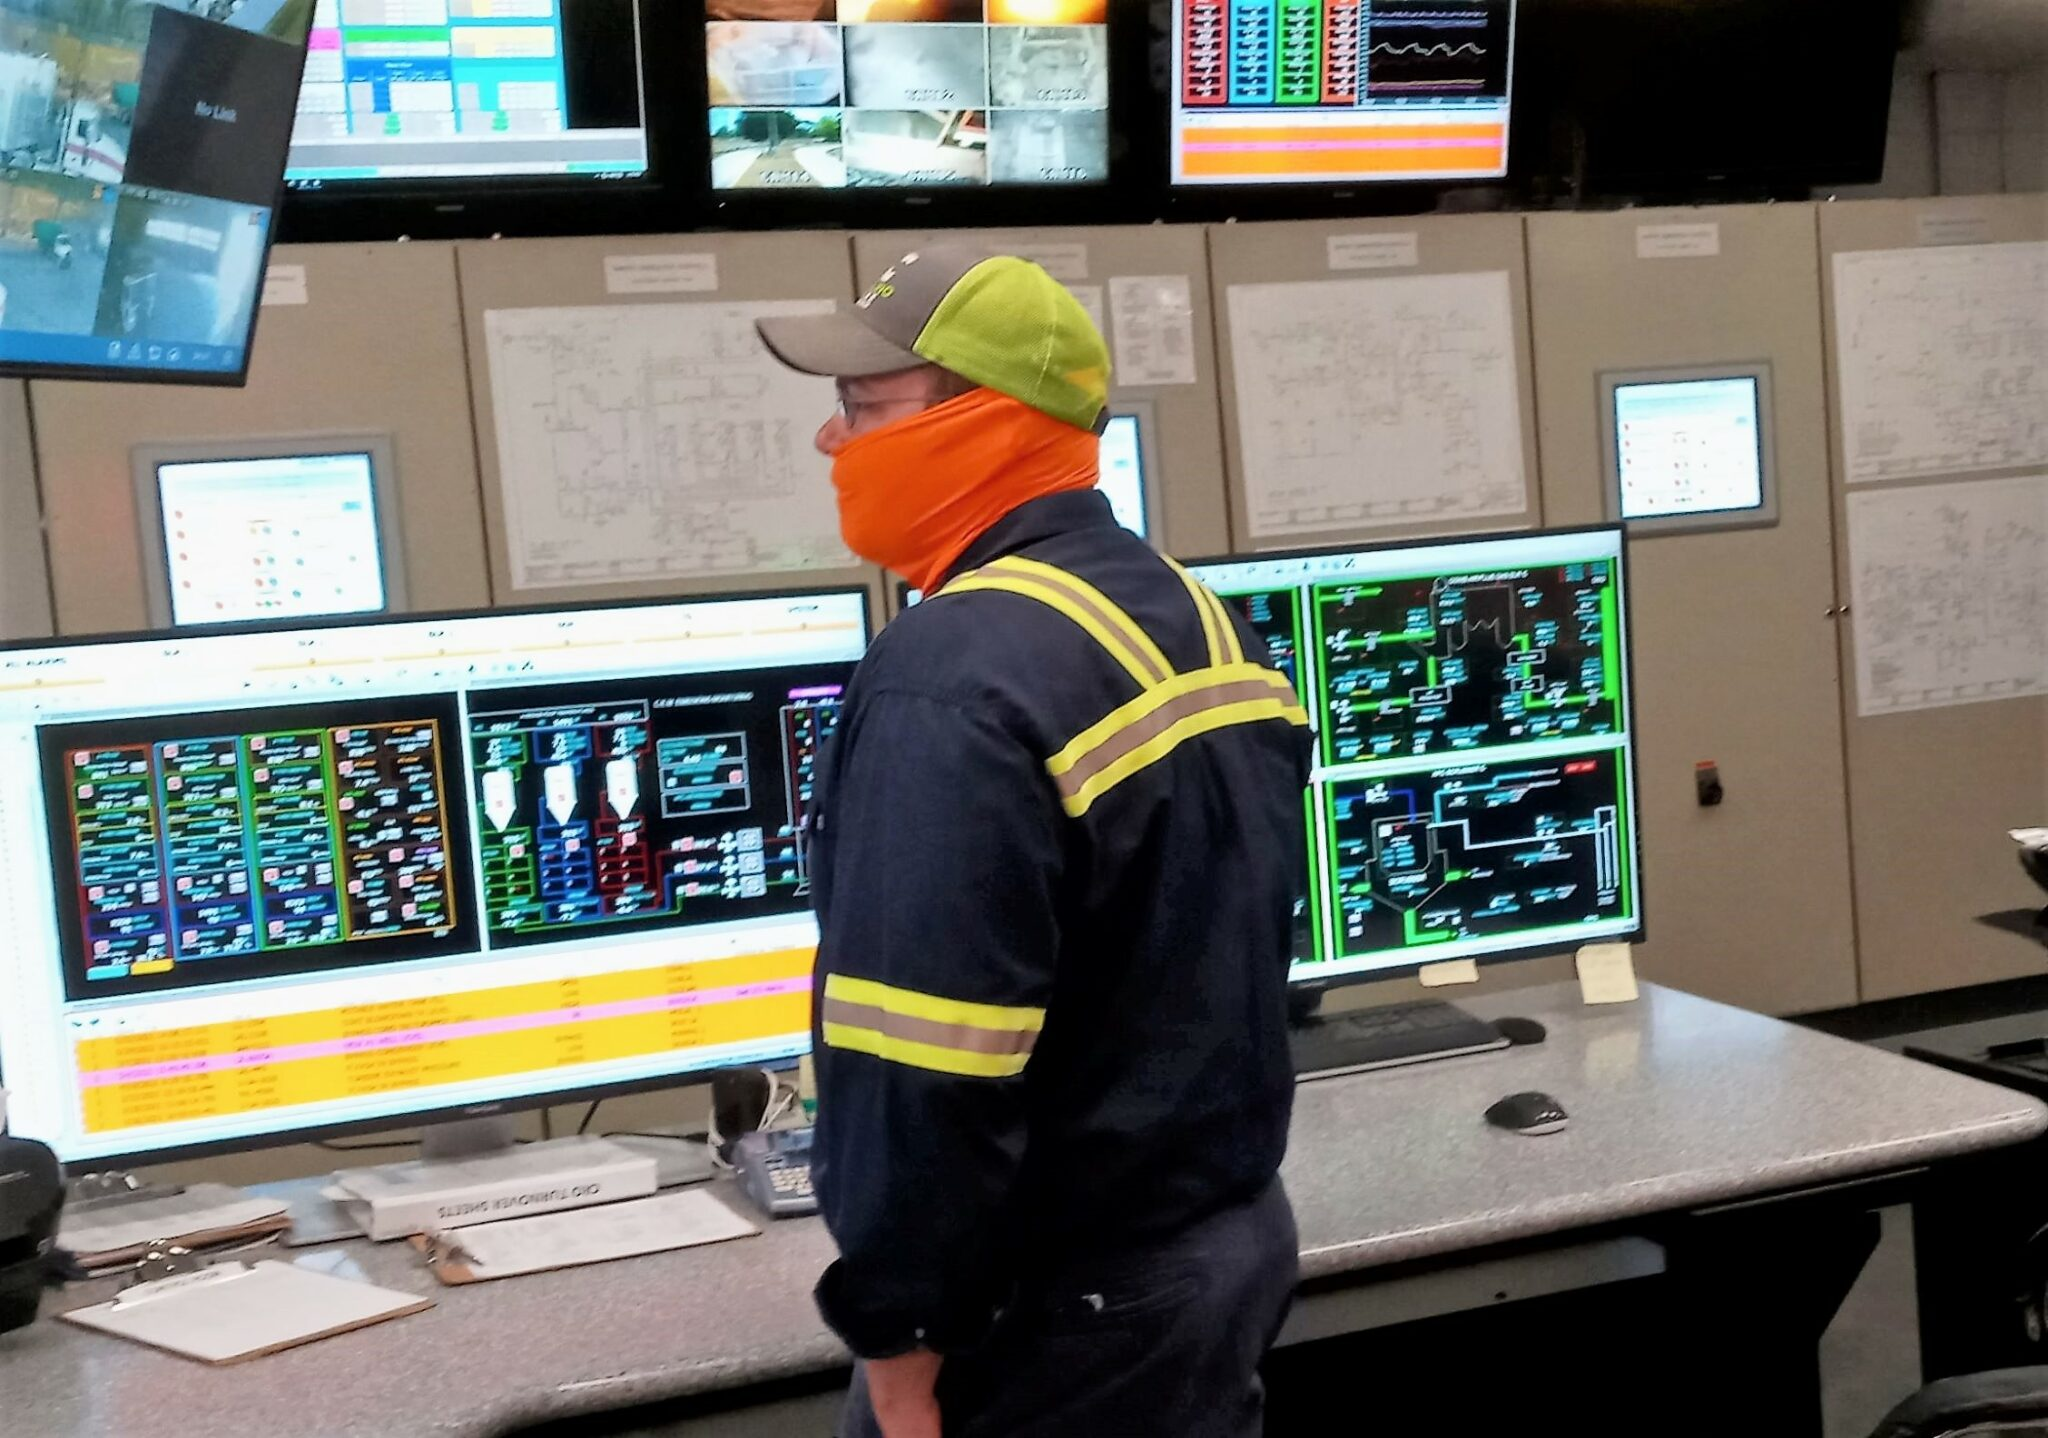 Gentry Storm is seen supervising the many systems that operate at Pasco's WTE plant.